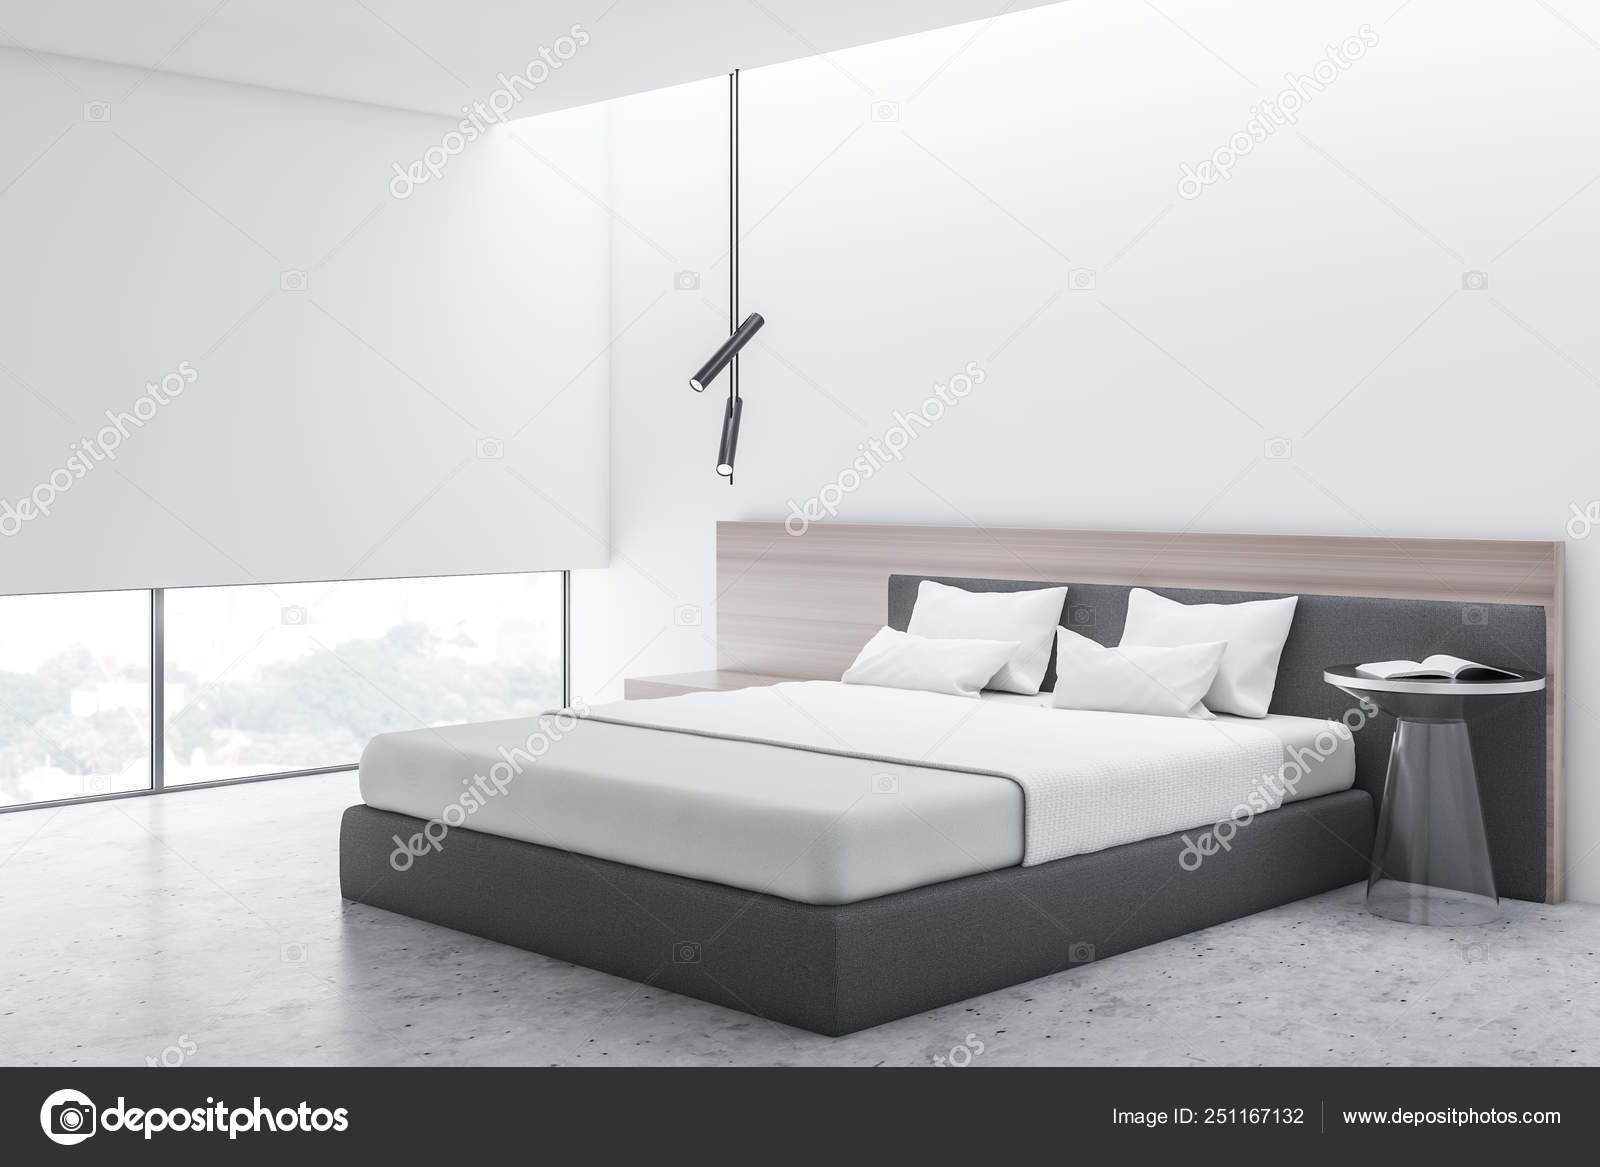 Stylish Bedroom Interior With White Bedding Of King Size Bed In Fashionable 3d Render Stock Photo C Denisismagilov 251167132